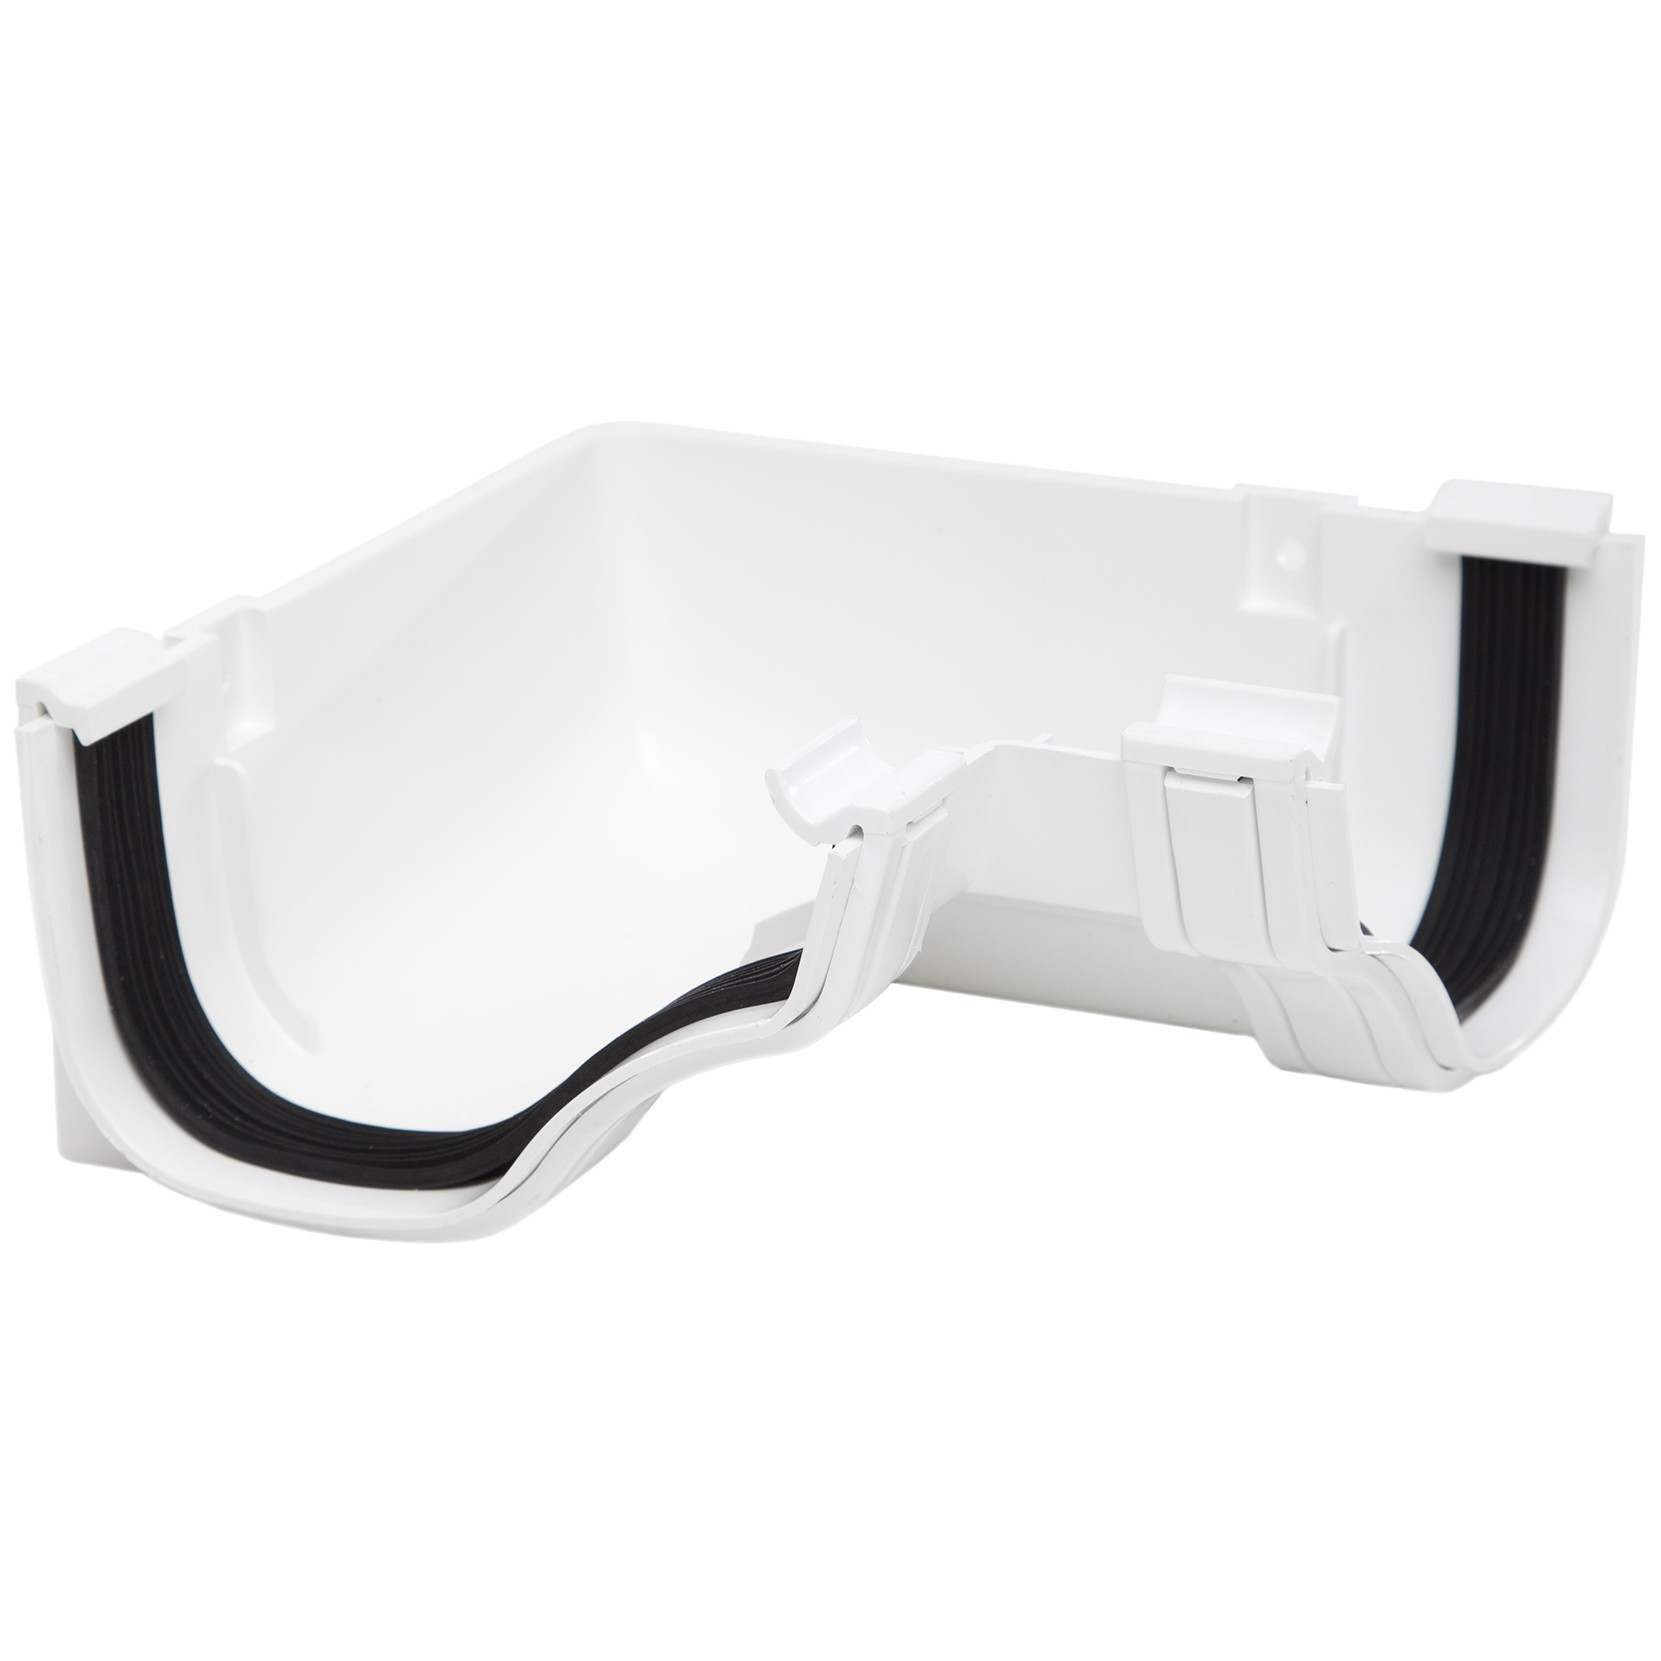 Rog13w Polypipe 130mm Ogee Extra Capacity Gutter 90 Degree